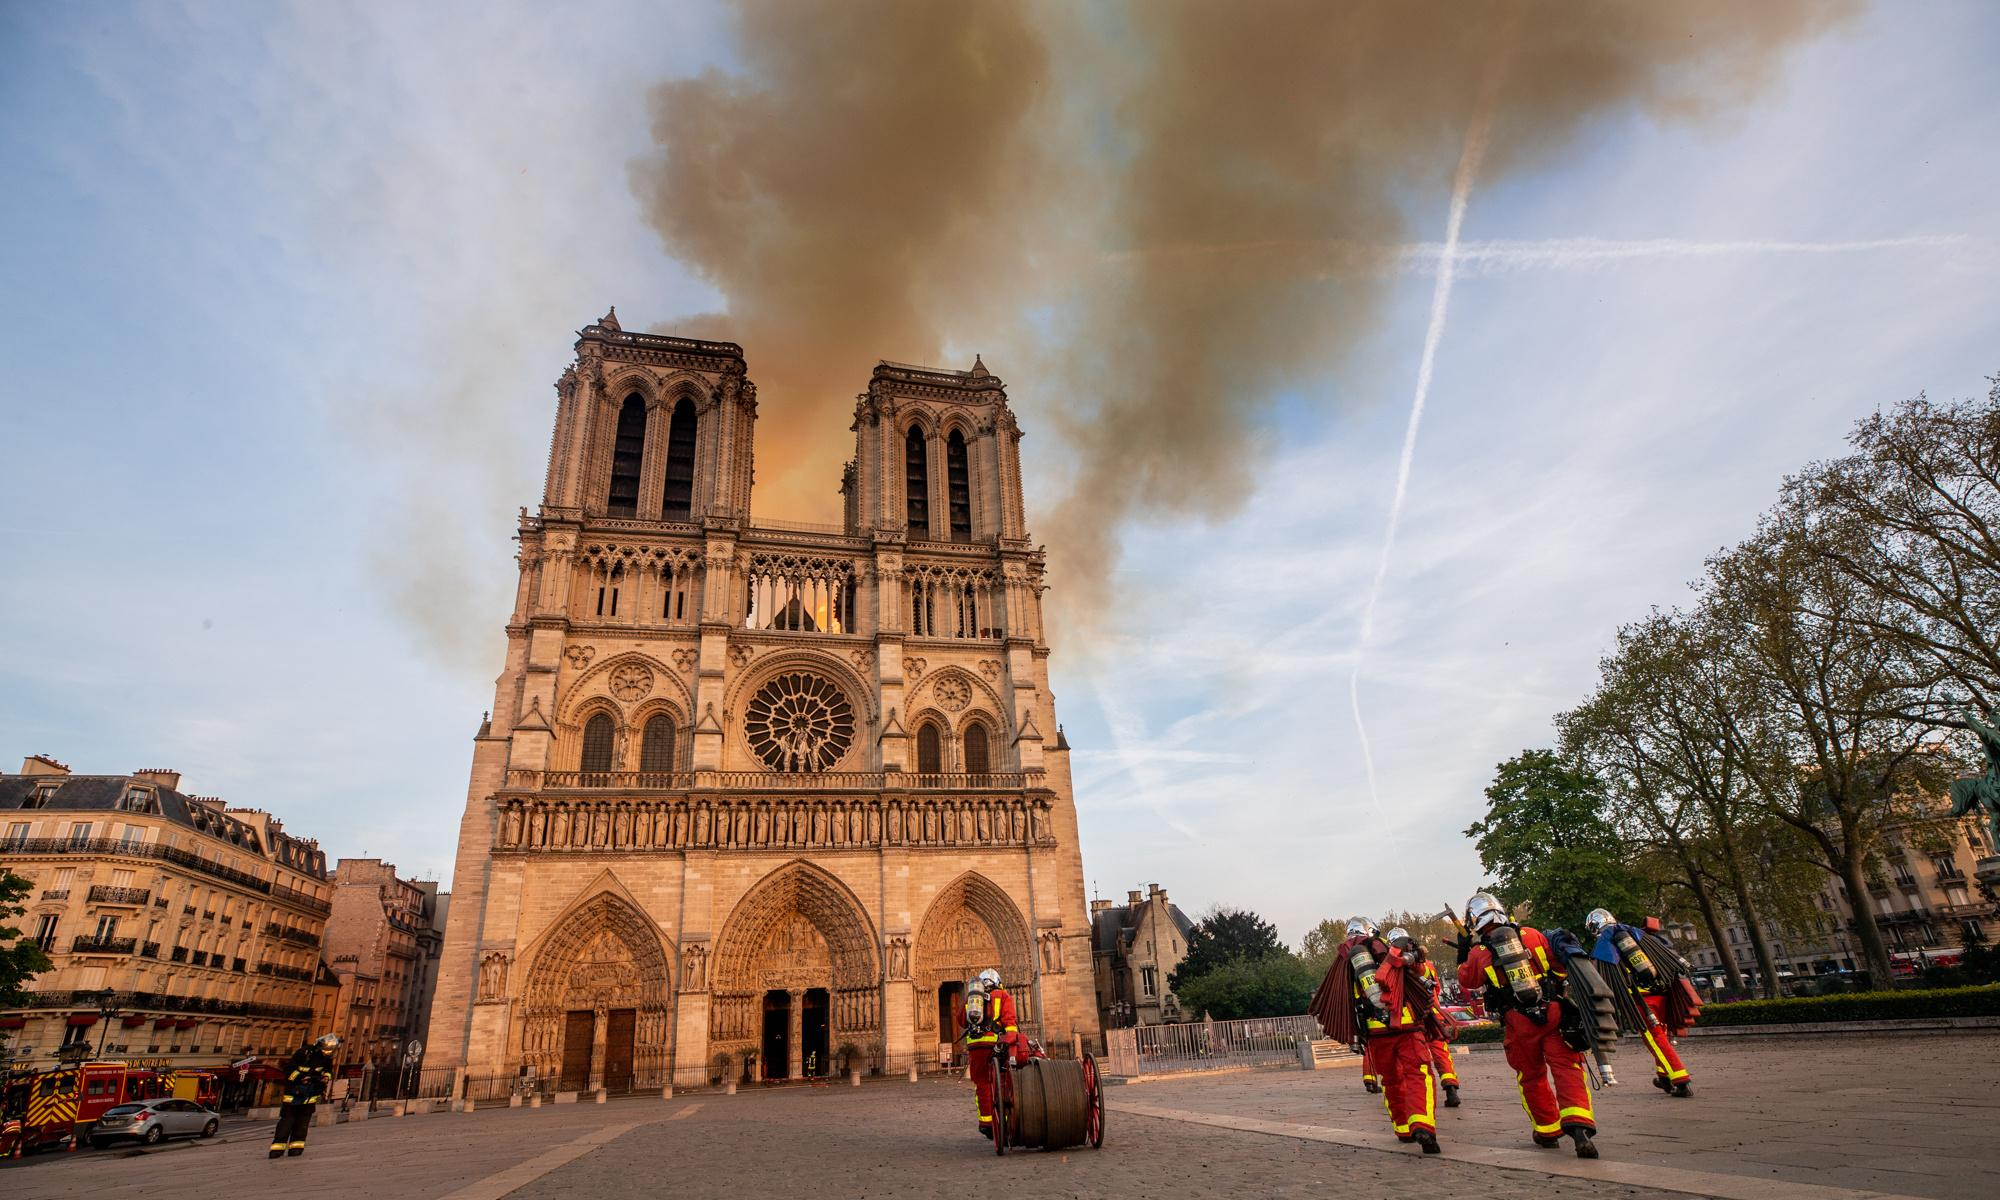 Notre Dame restoration: how to save an iconic building from fire